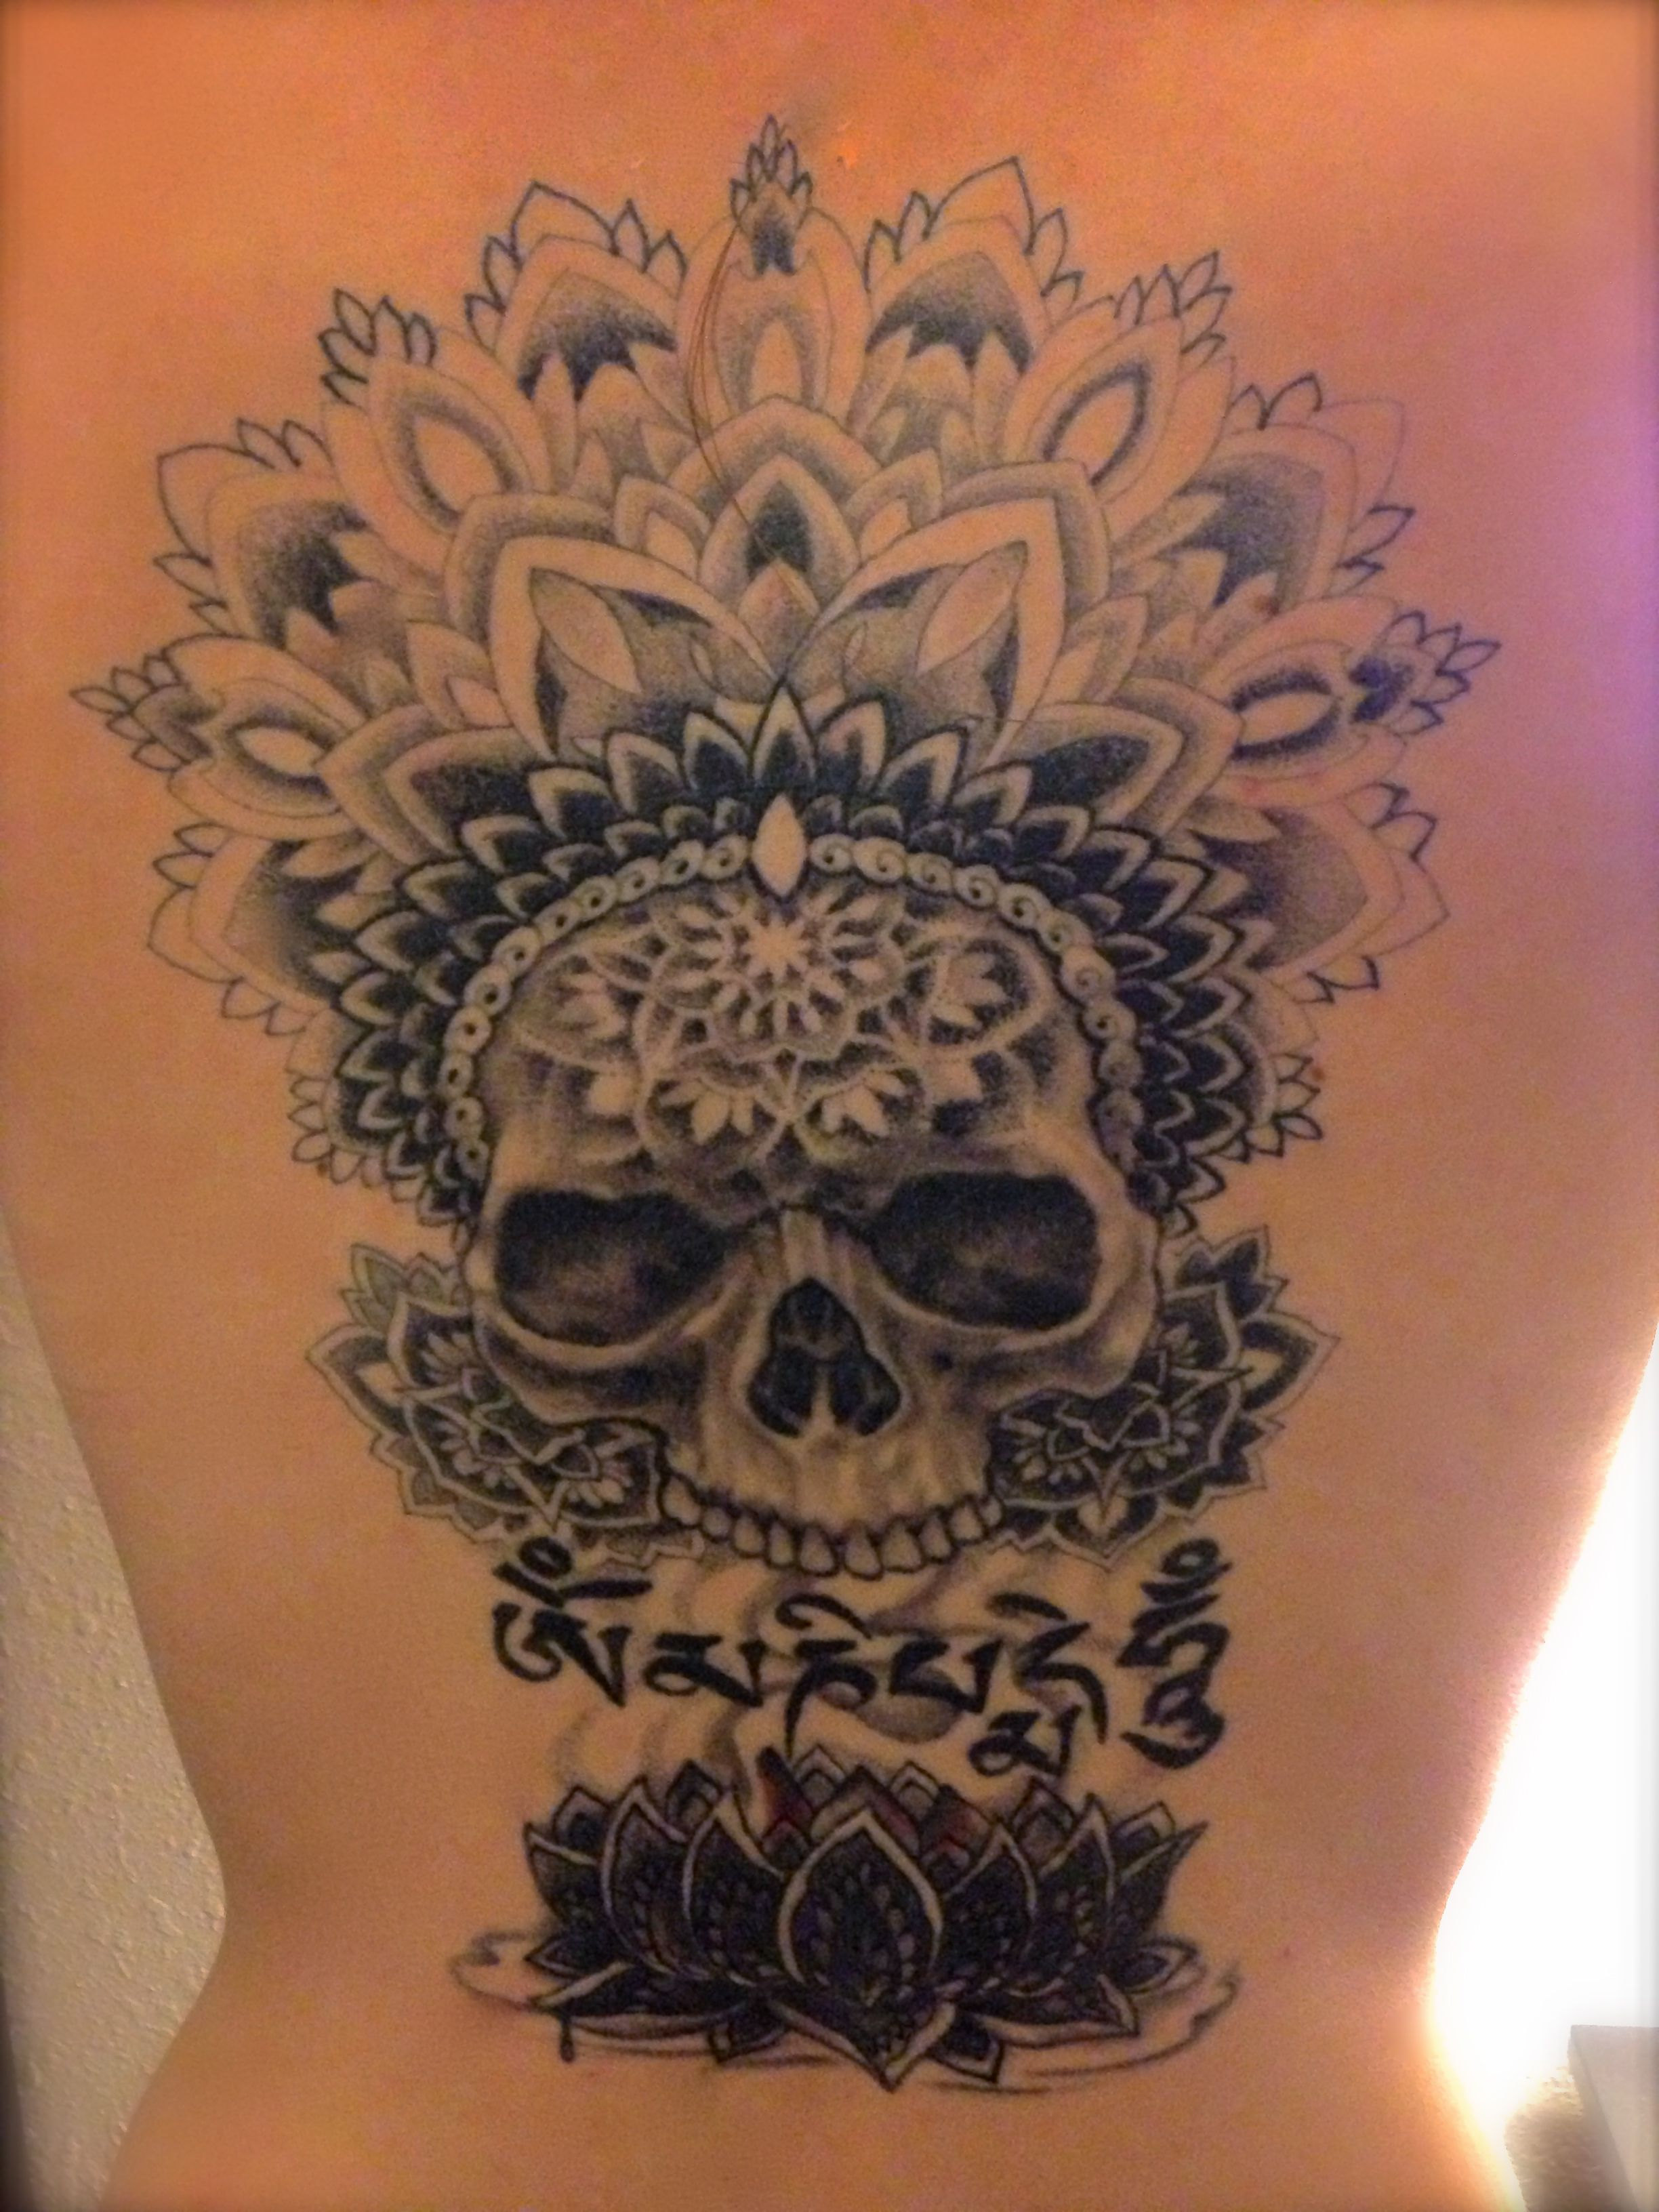 Tattoo Done By Fernando Casillas Tibetan Buddhist Symbology With Aztec Execution Lotus Mandala Skull Top Tattoos Skull Tattoos Cool Tattoos